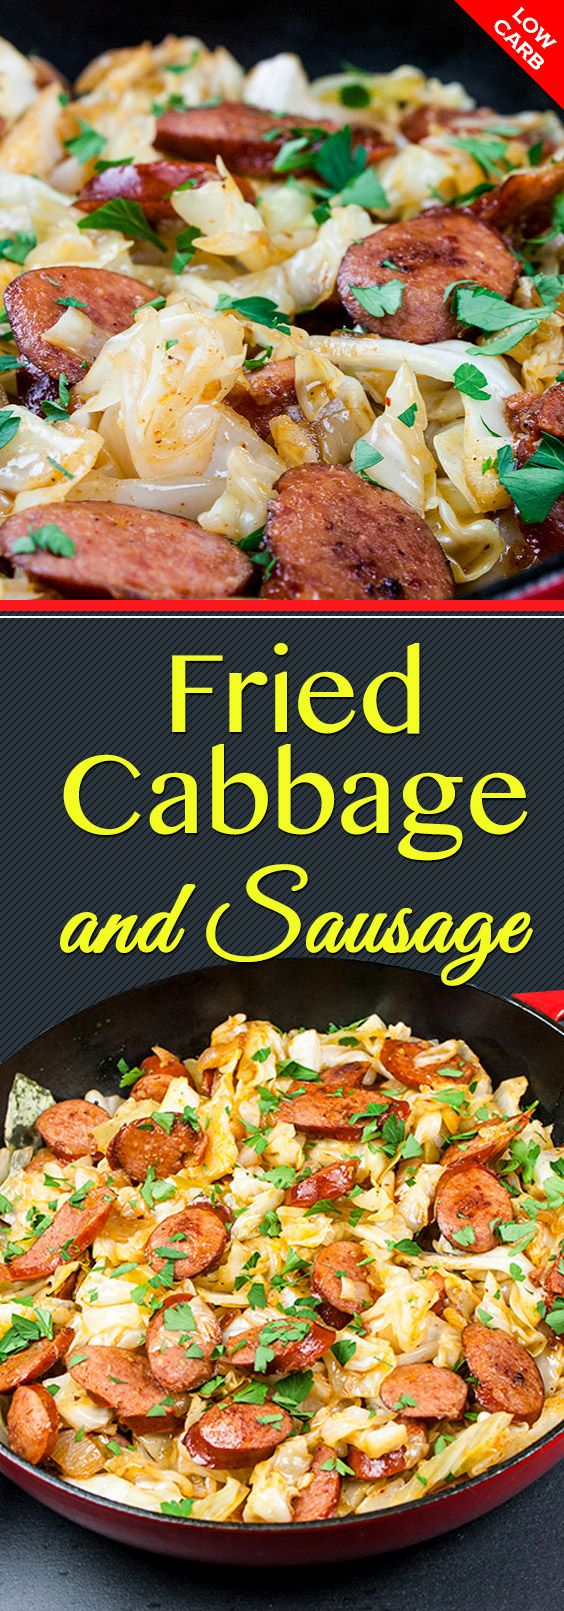 Fried Cabbage and Sausage -   23 sausage recipes cabbage ideas